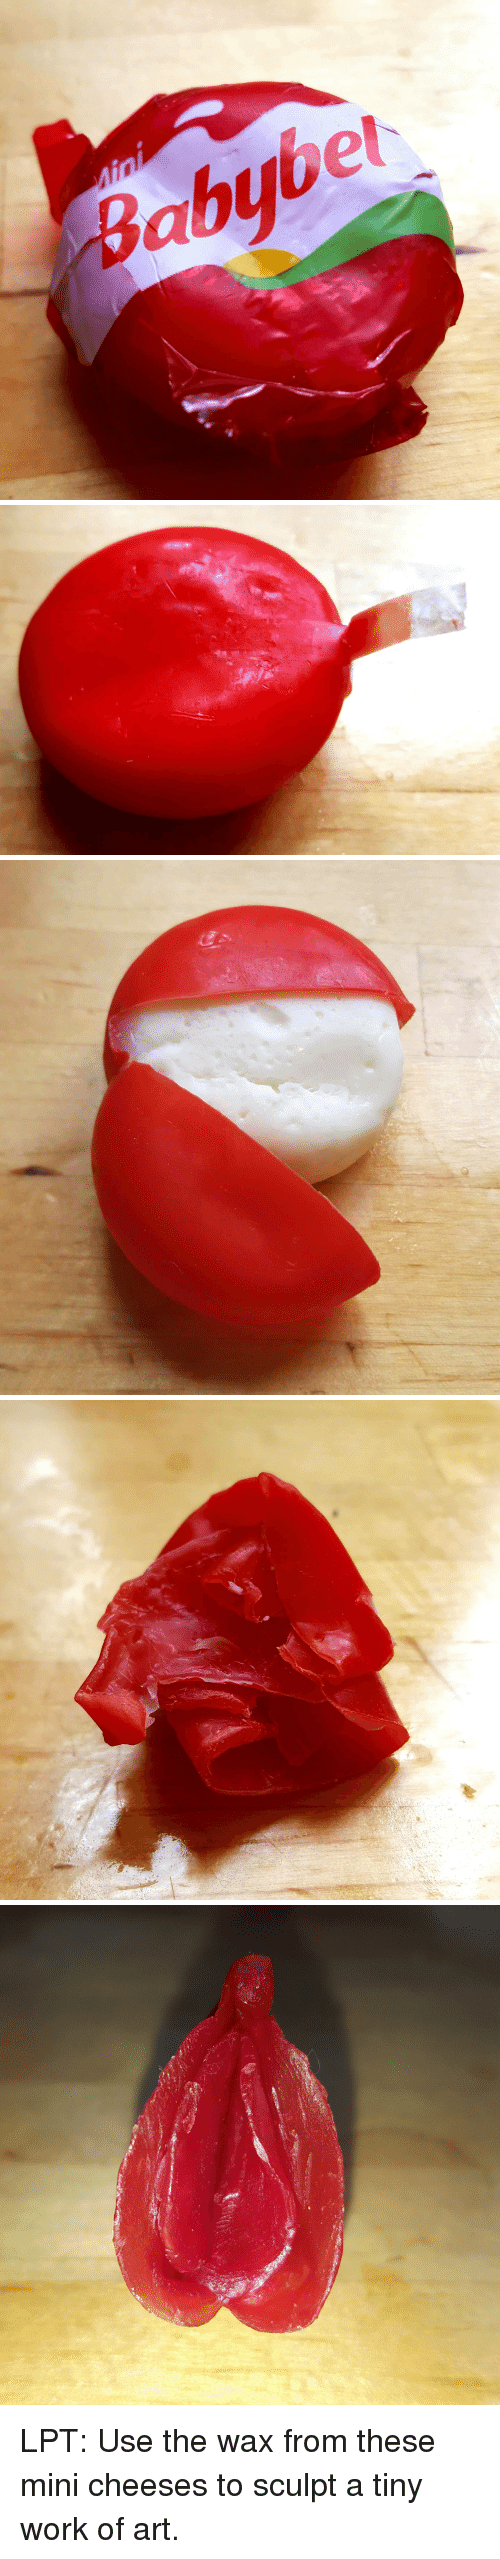 LPT: Babybe  et  쉘 LPT: Use the wax from these mini cheeses to sculpt a tiny work of art.